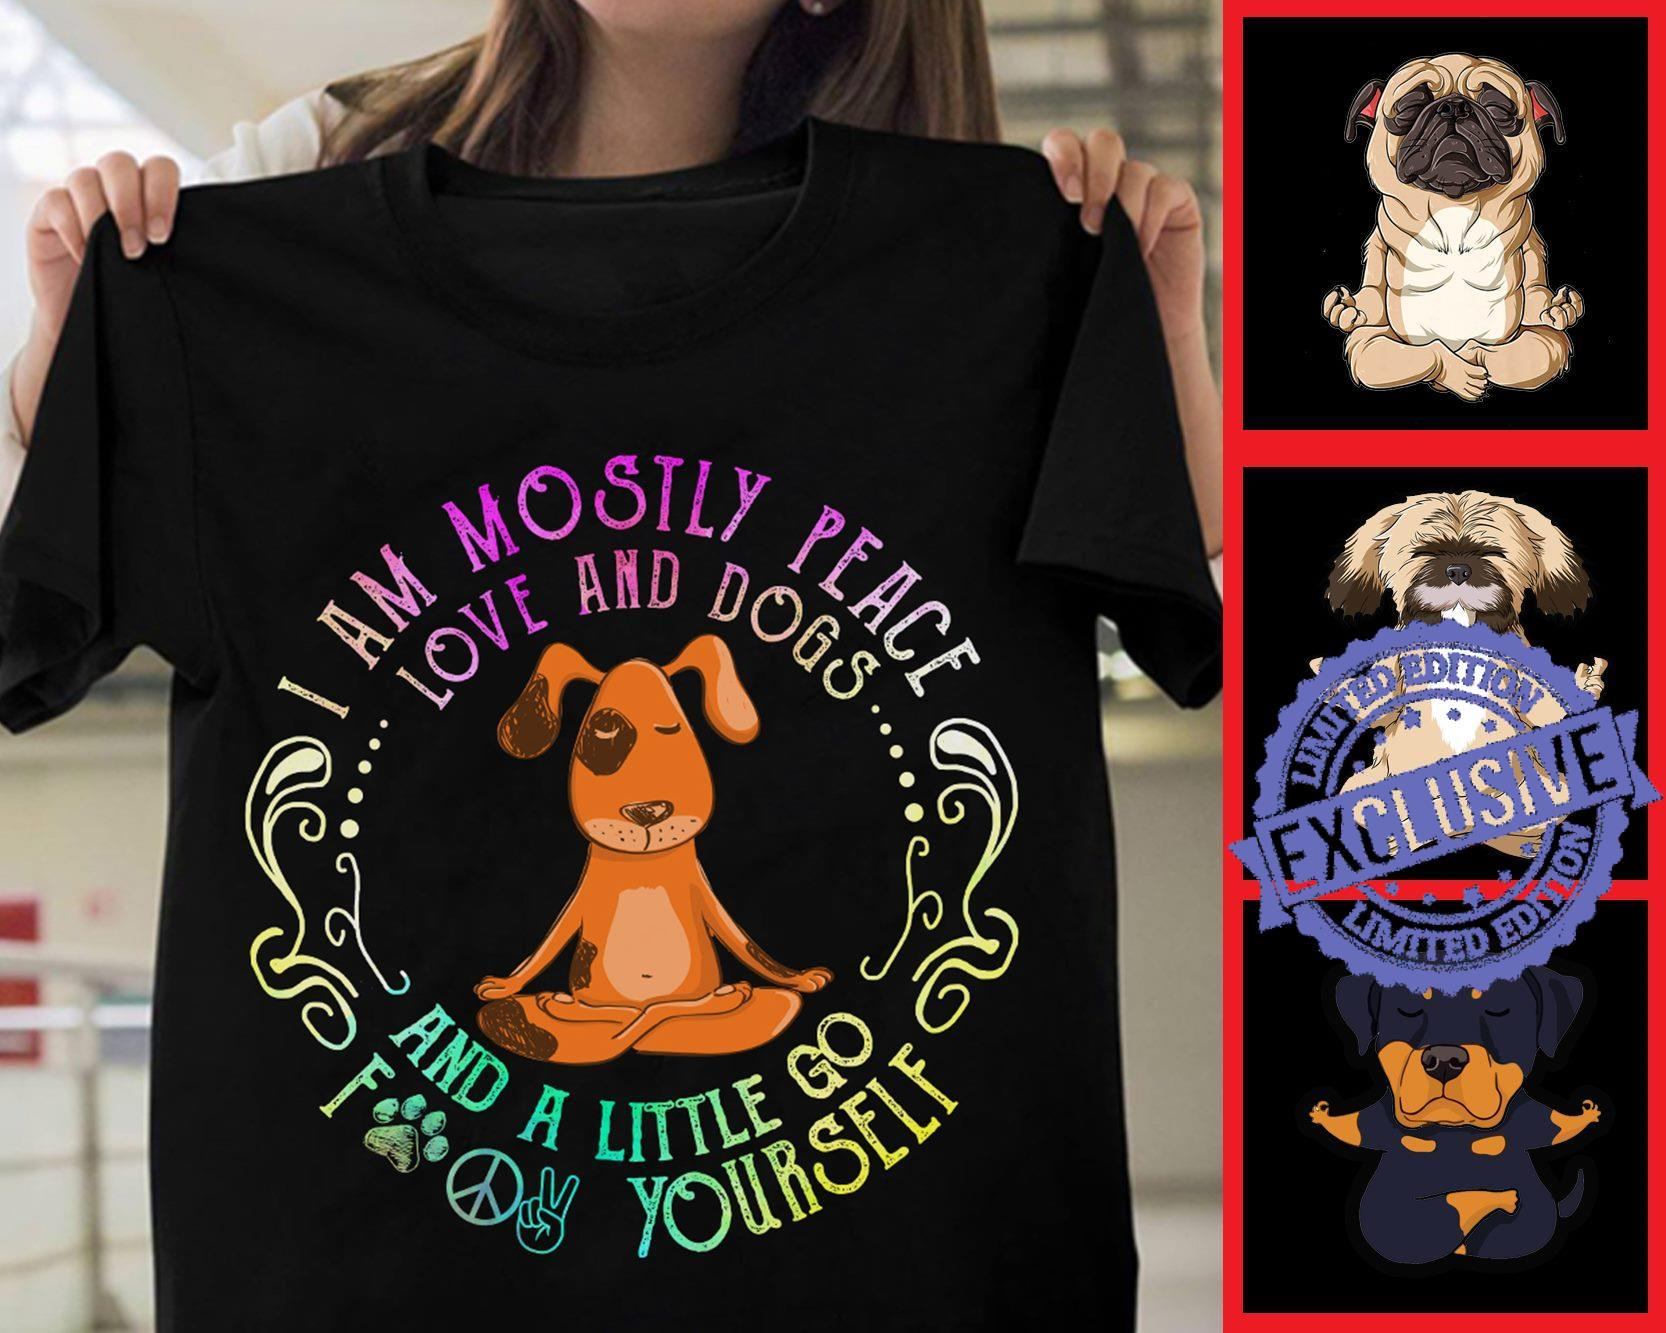 I am mostly peace love and dogs and a little go fuck shirt